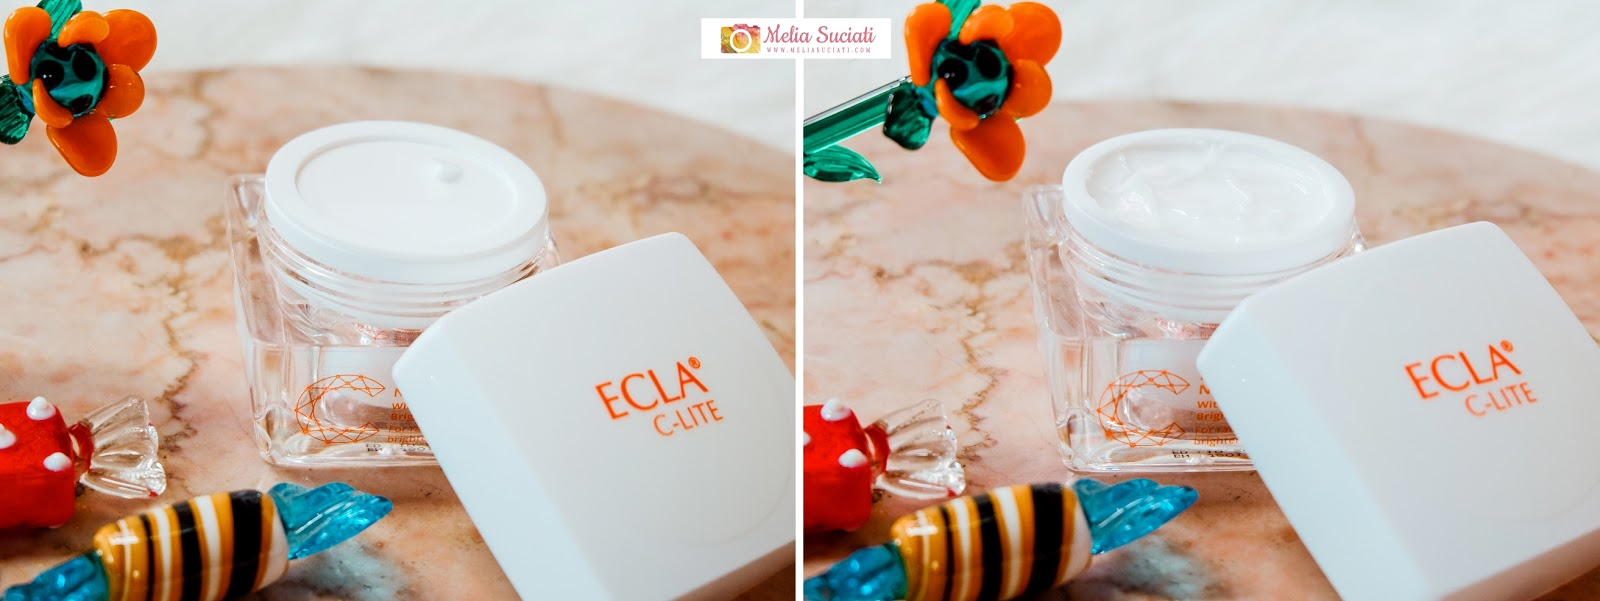 REVIEW ECLA C-LITE SKIN SERIES